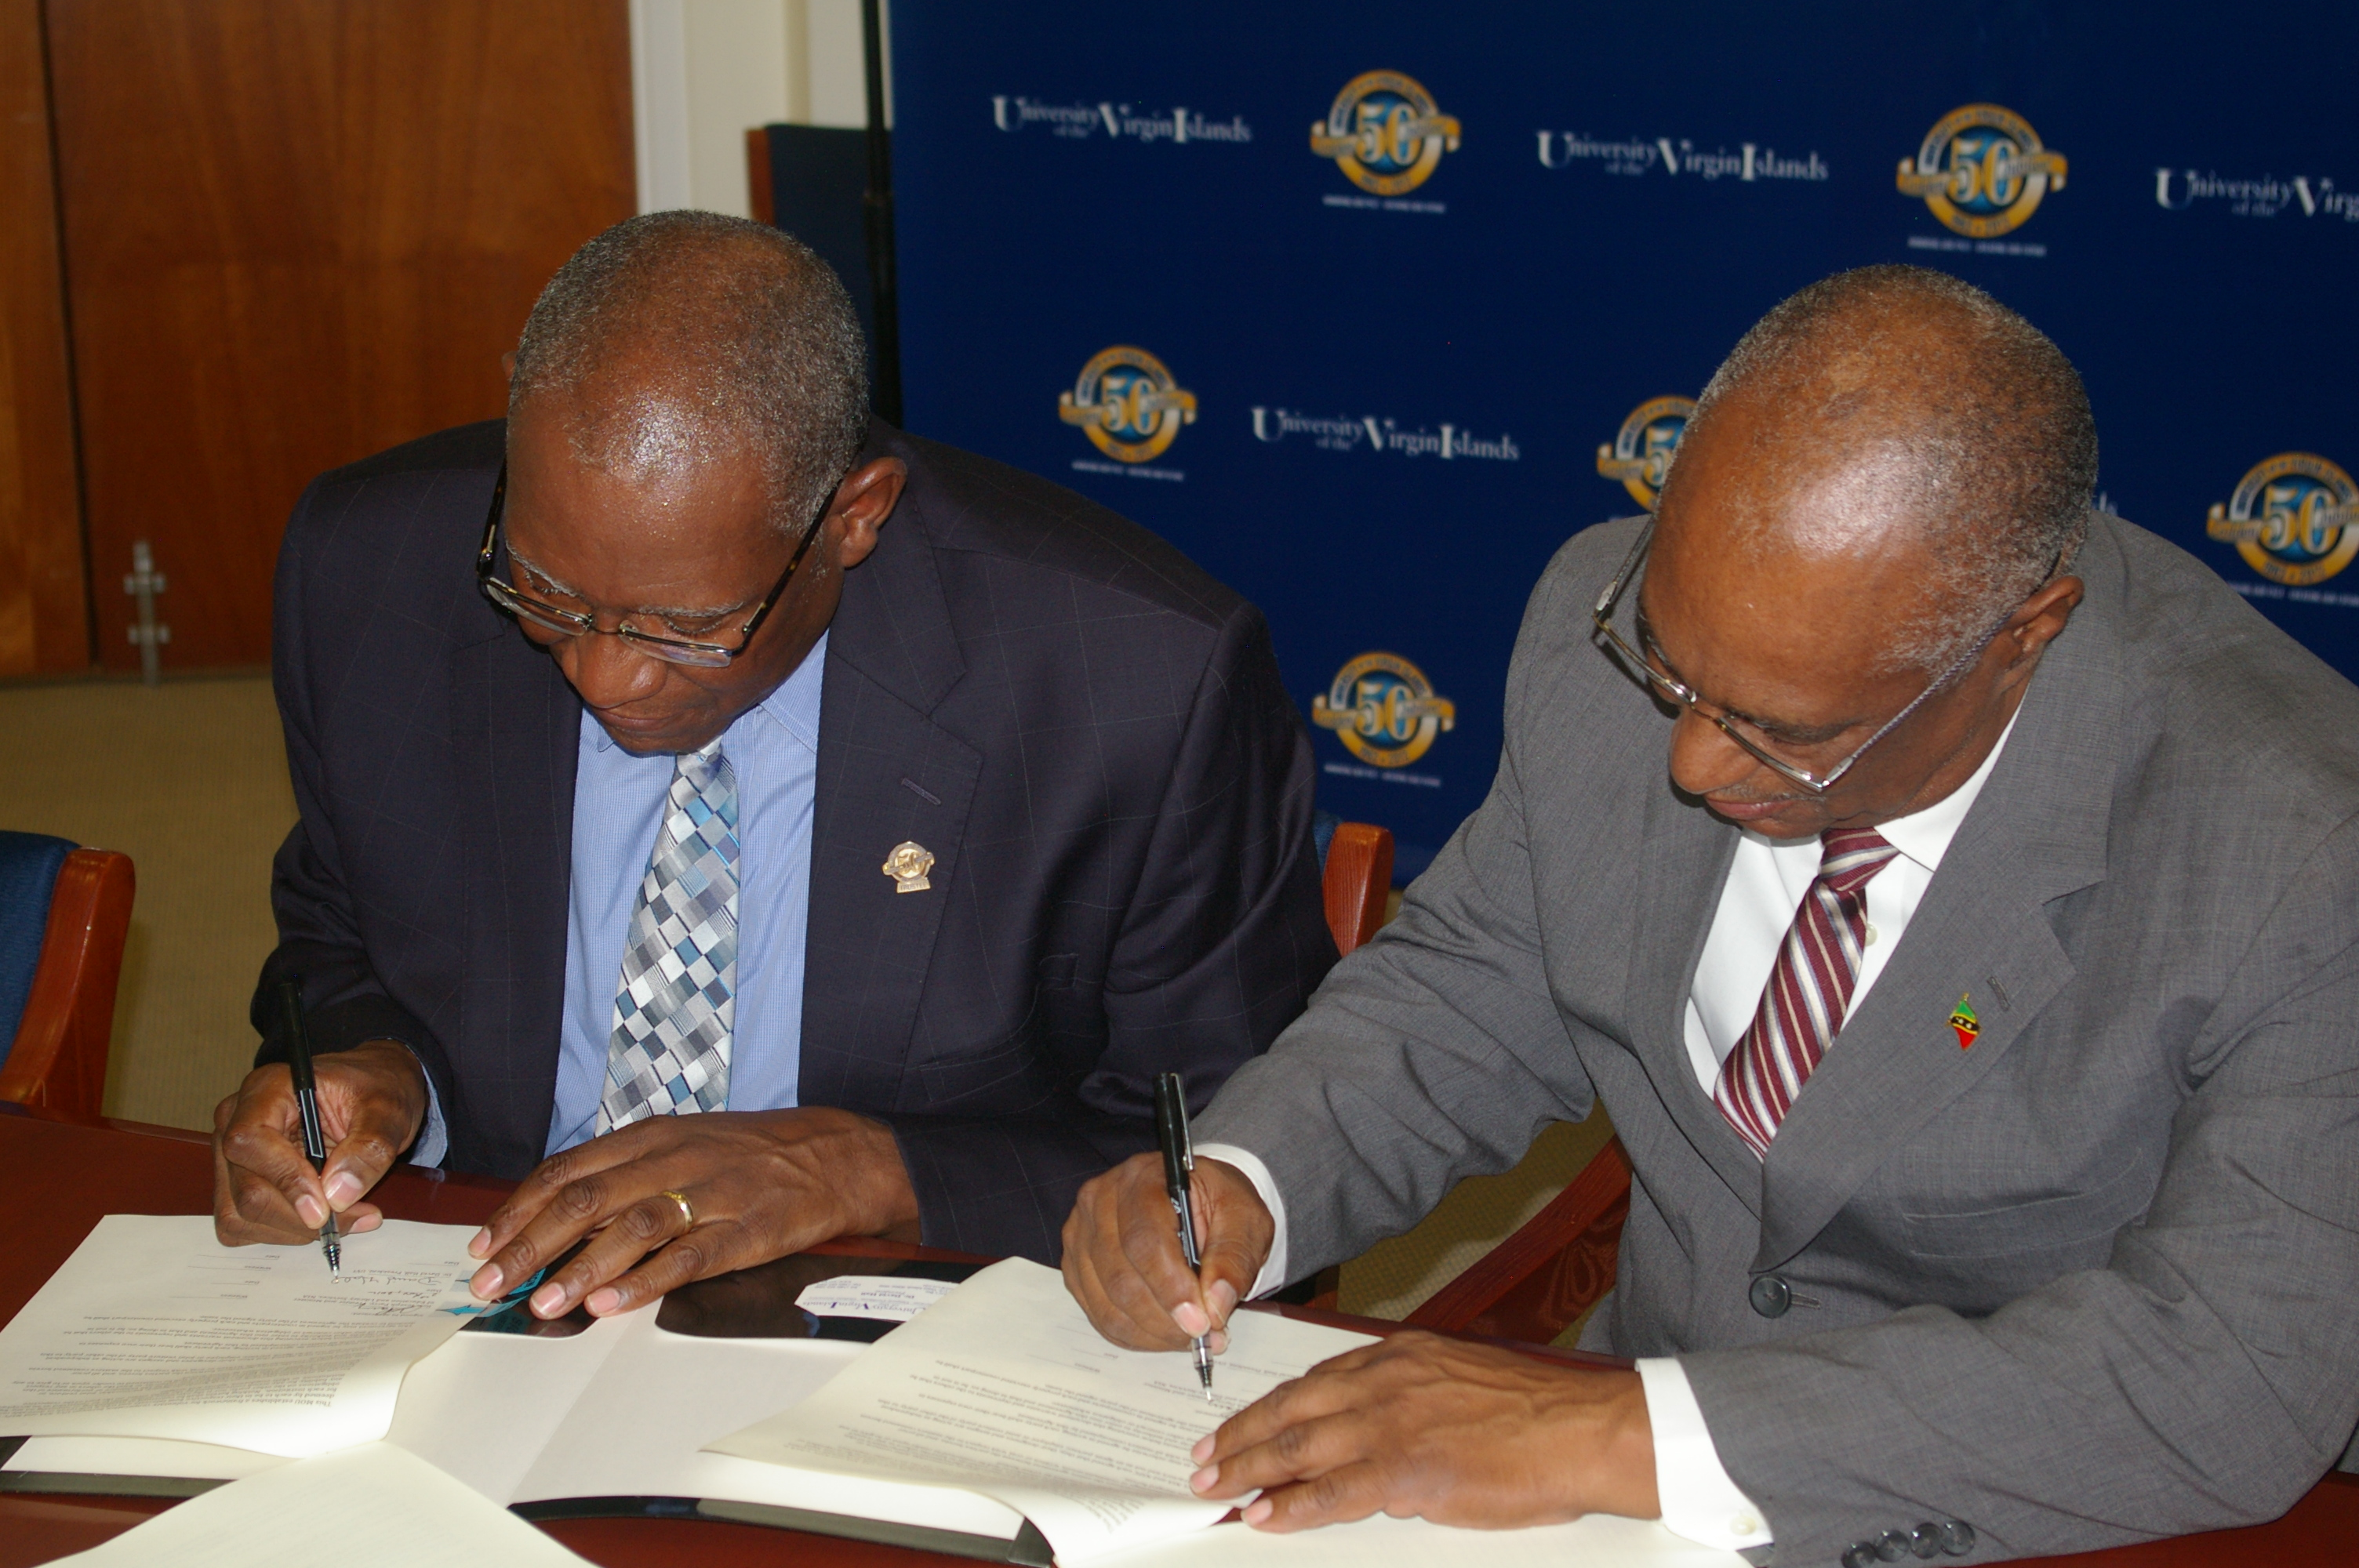 University of the Virgin Islands President, Mr. David Hall and Premier of Nevis, Hon. Joseph Parry